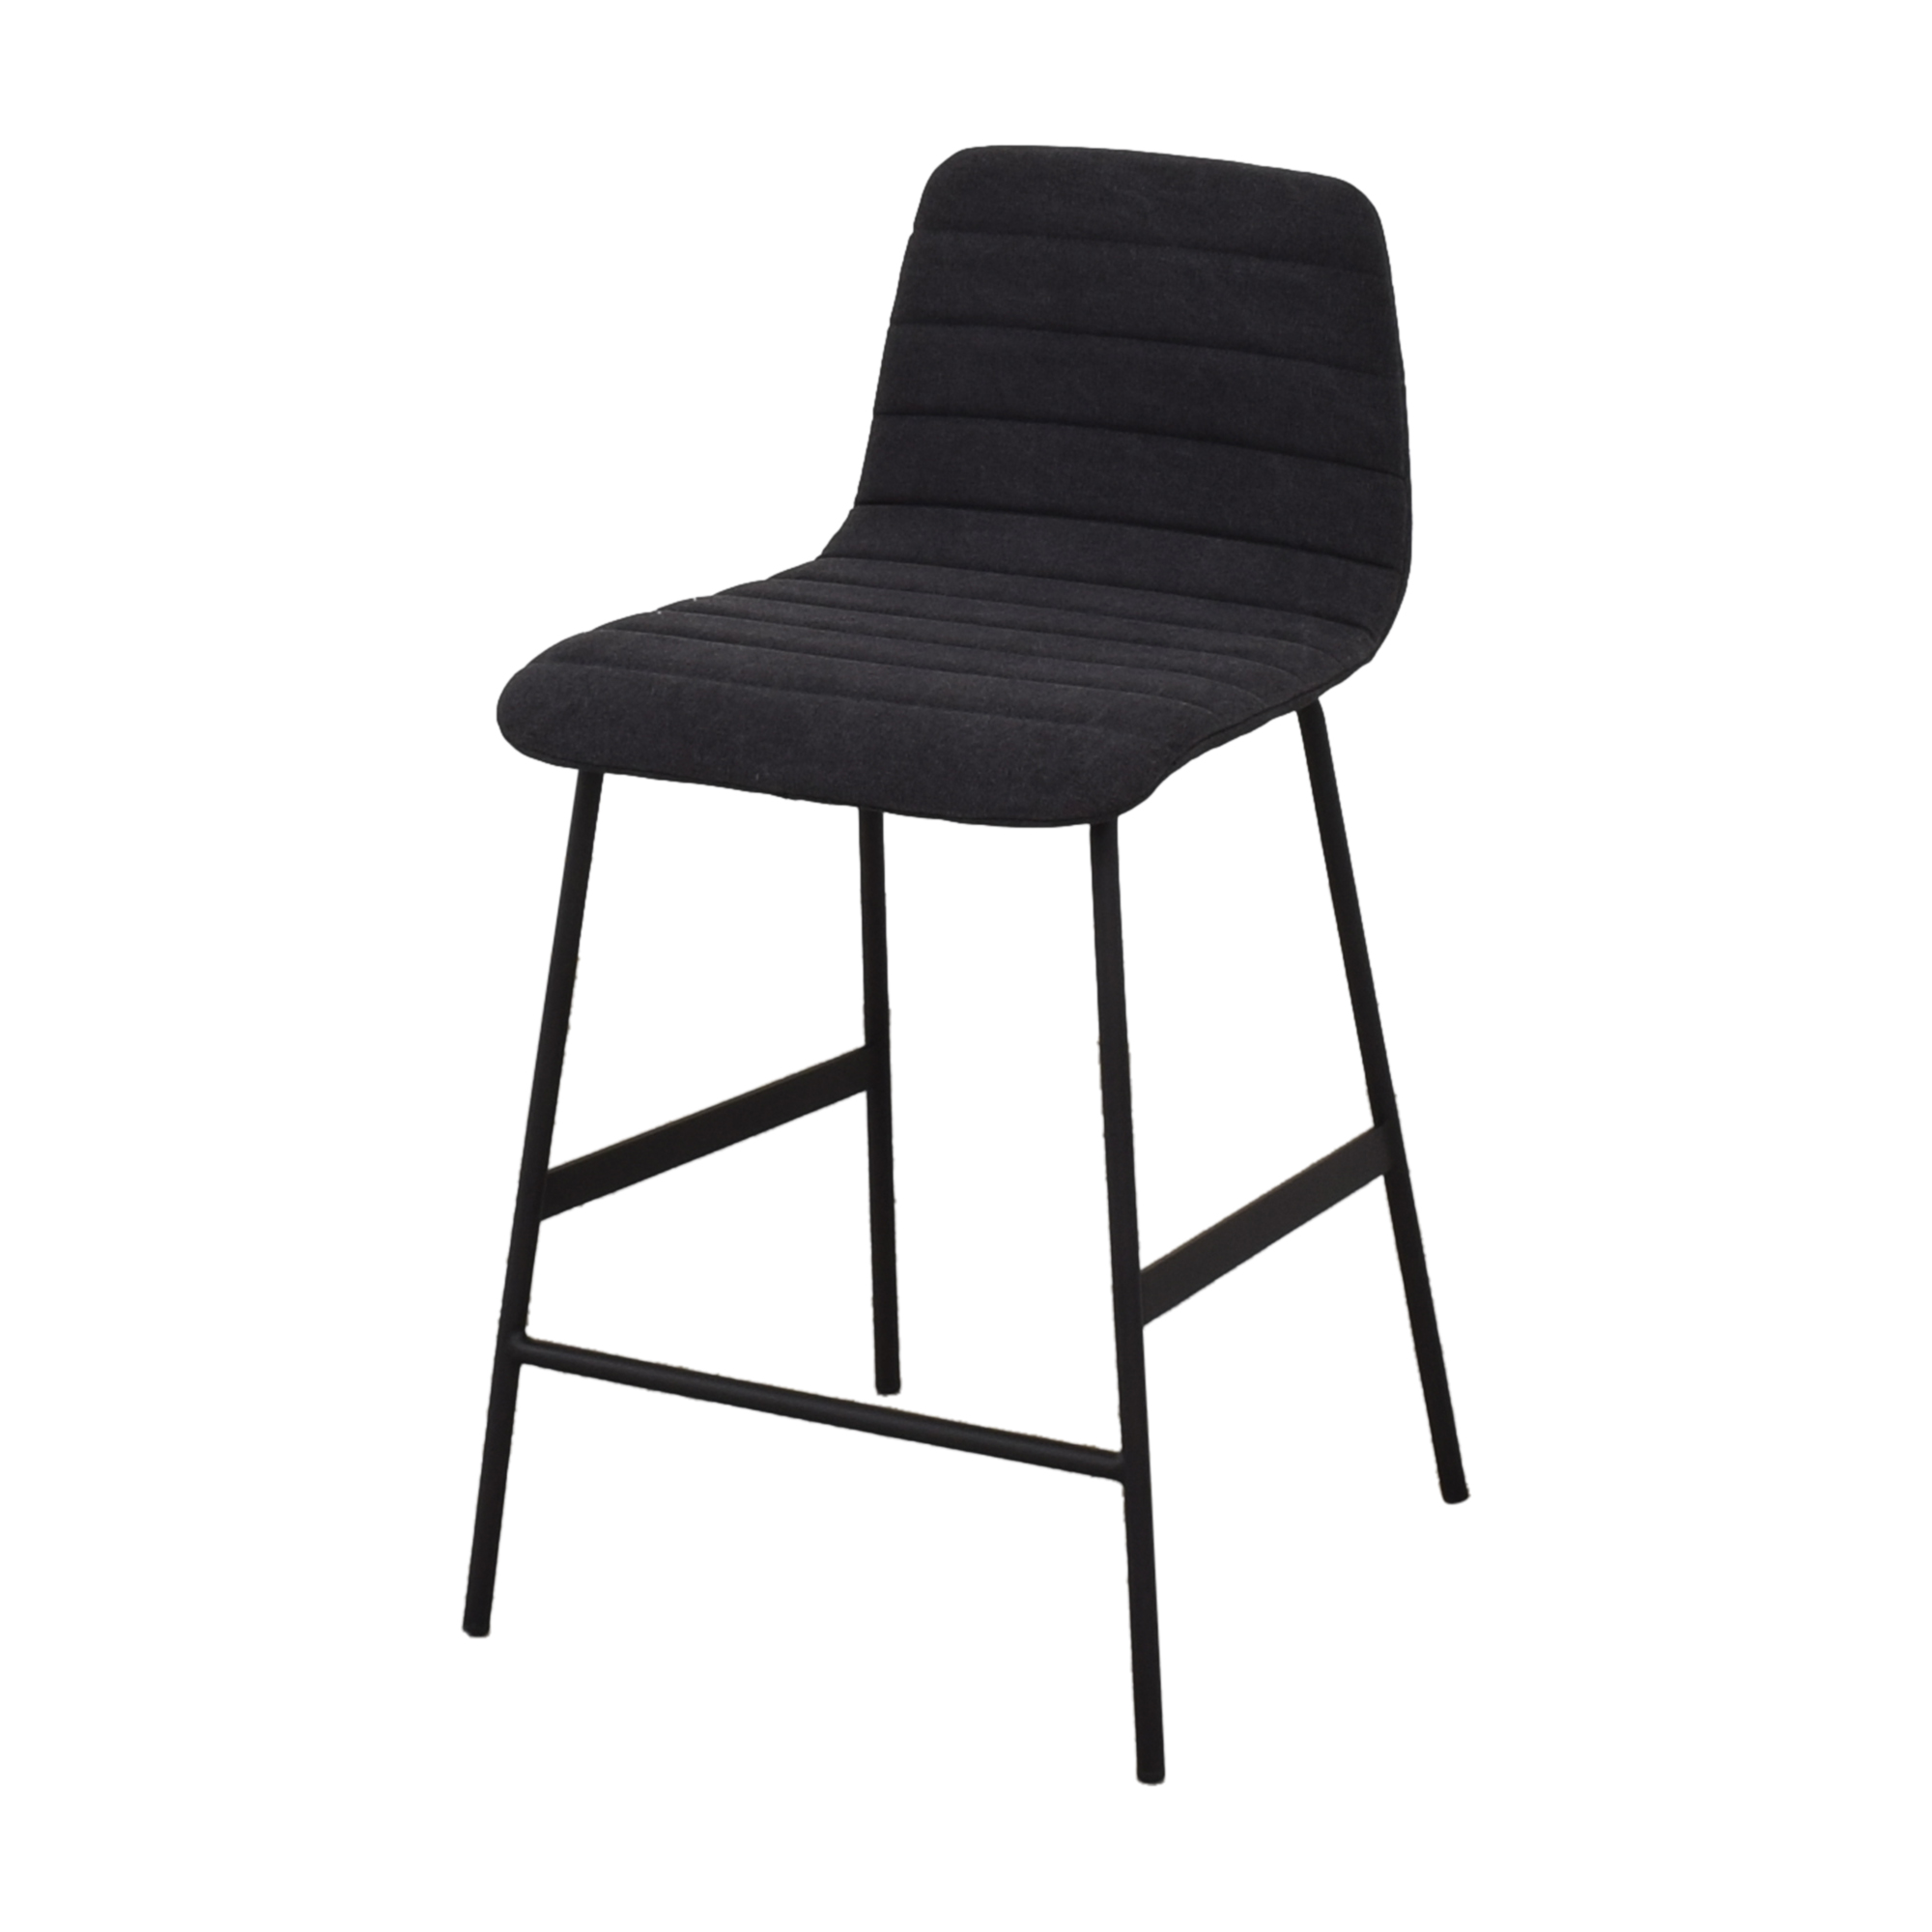 shop Gus Modern Gus Modern Lecture Stool online